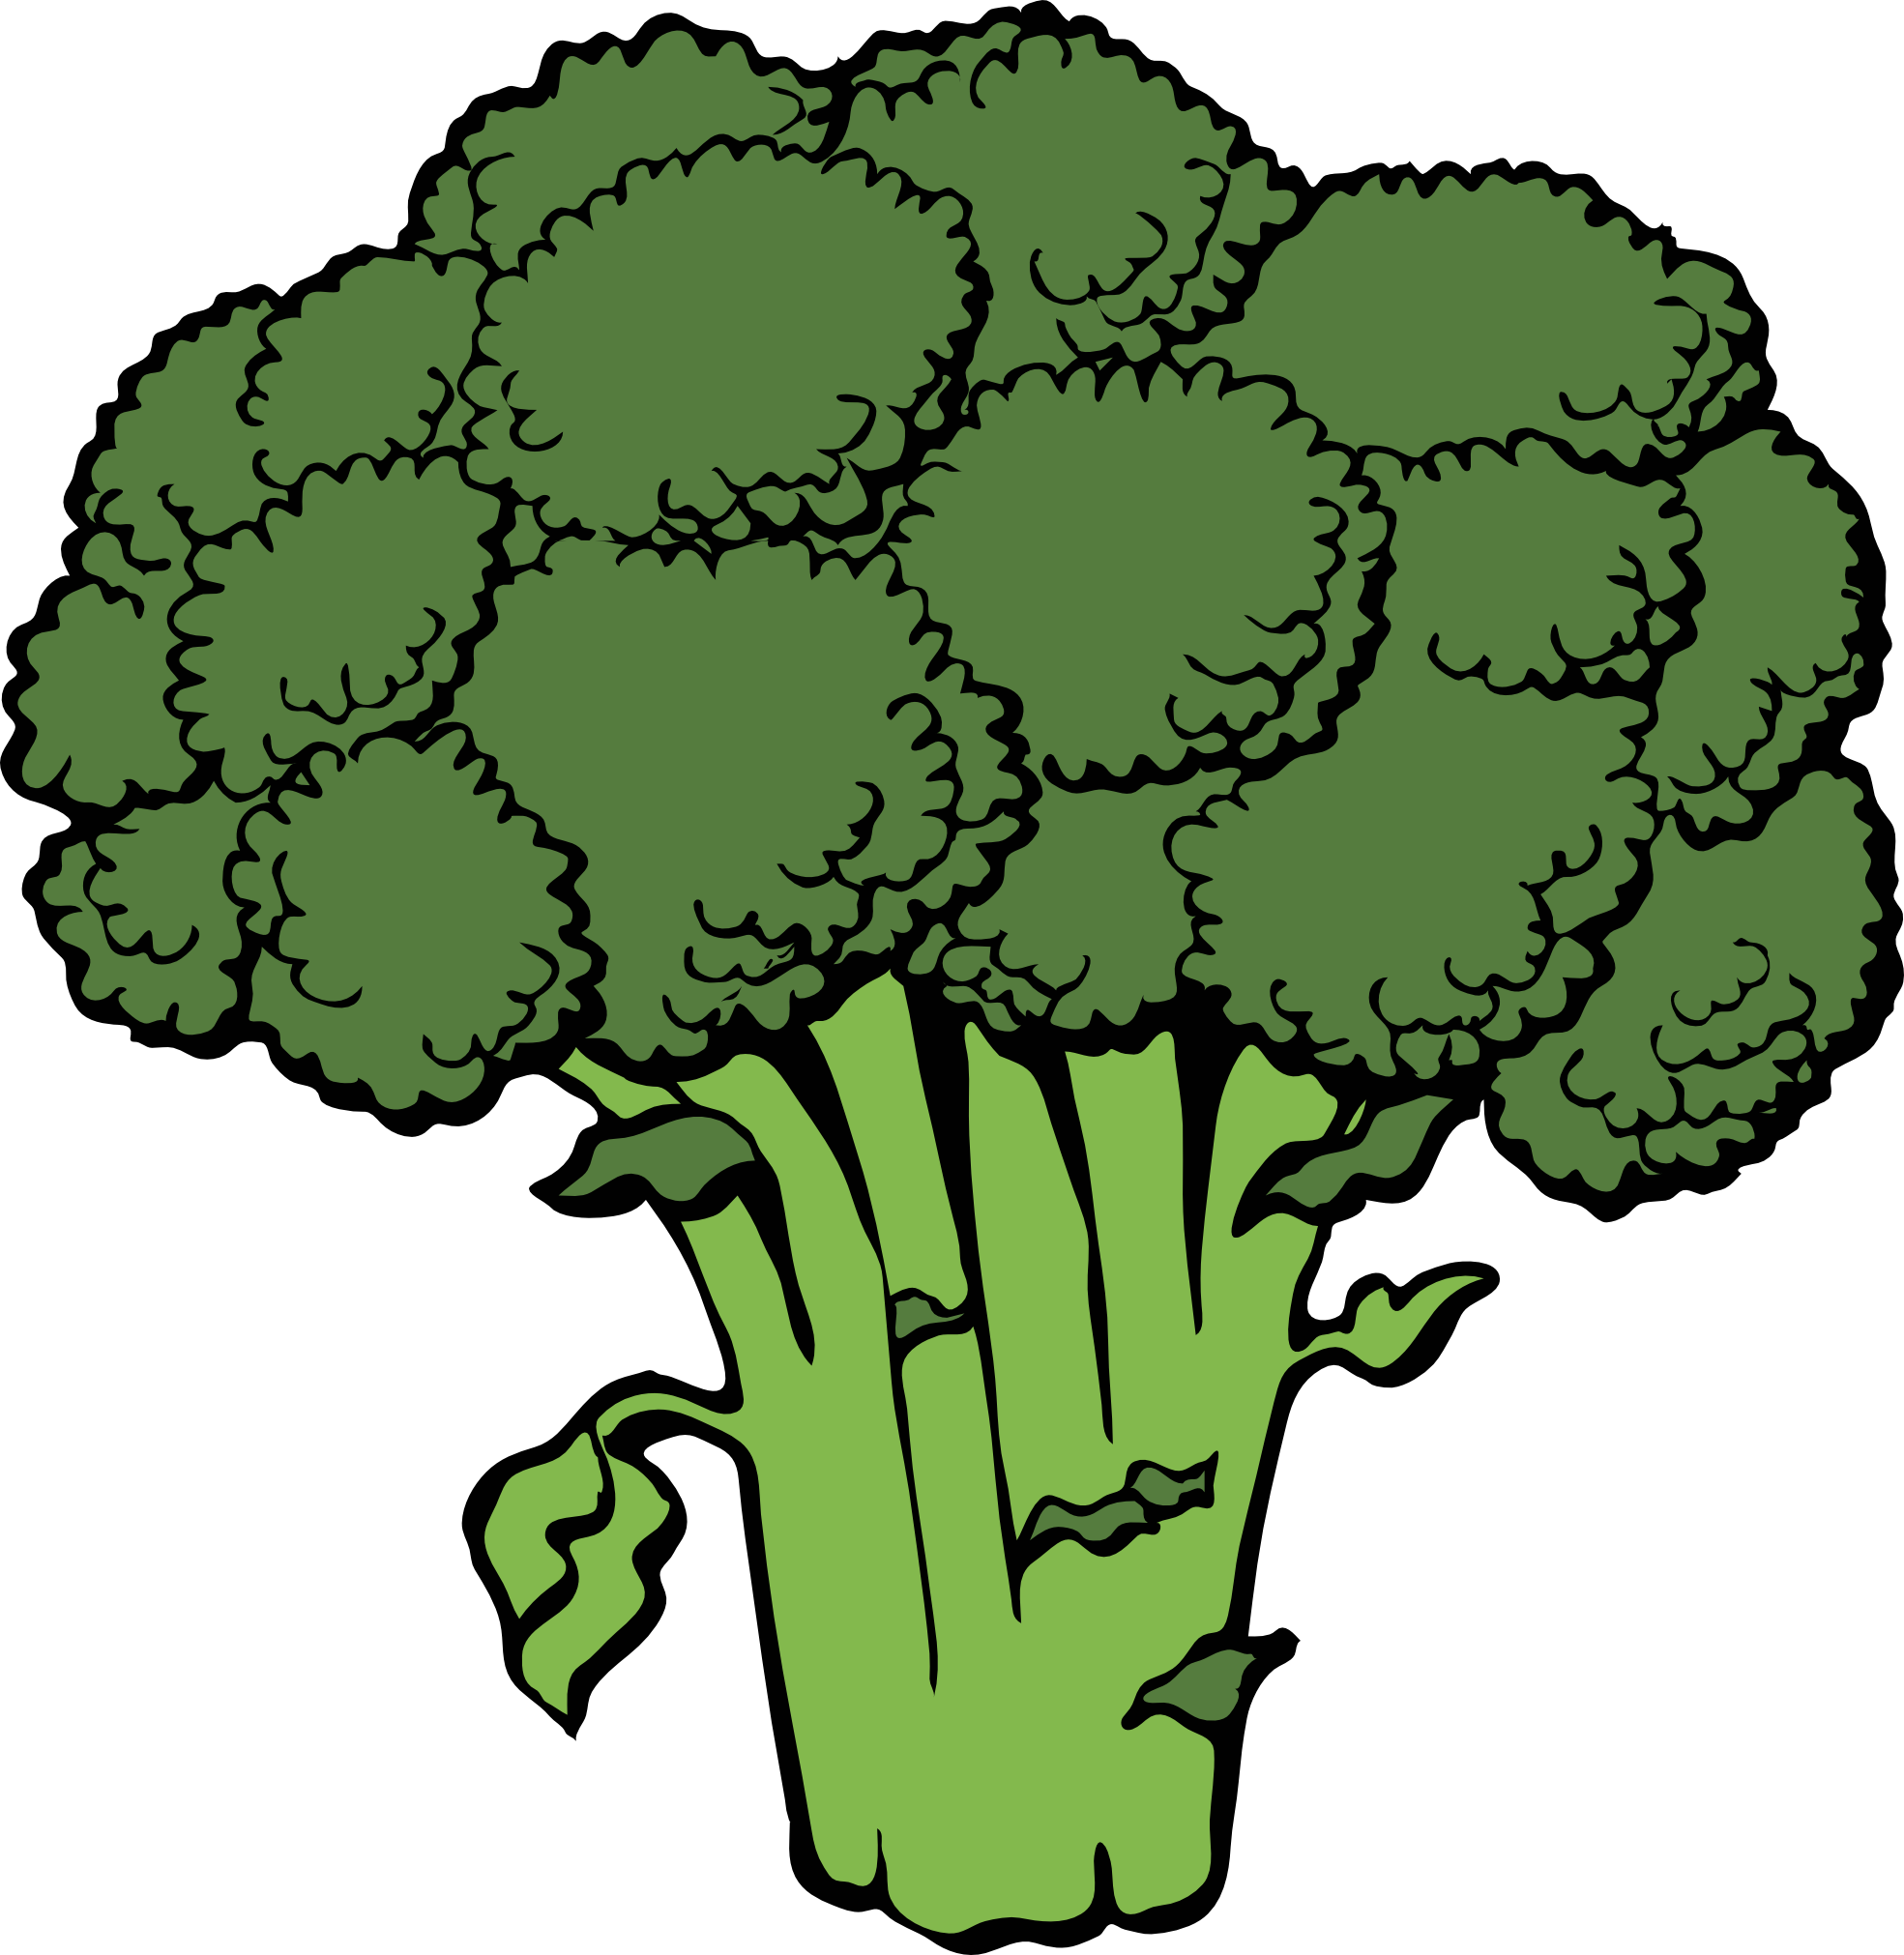 Broccoli clipart black and white. Line panda free images